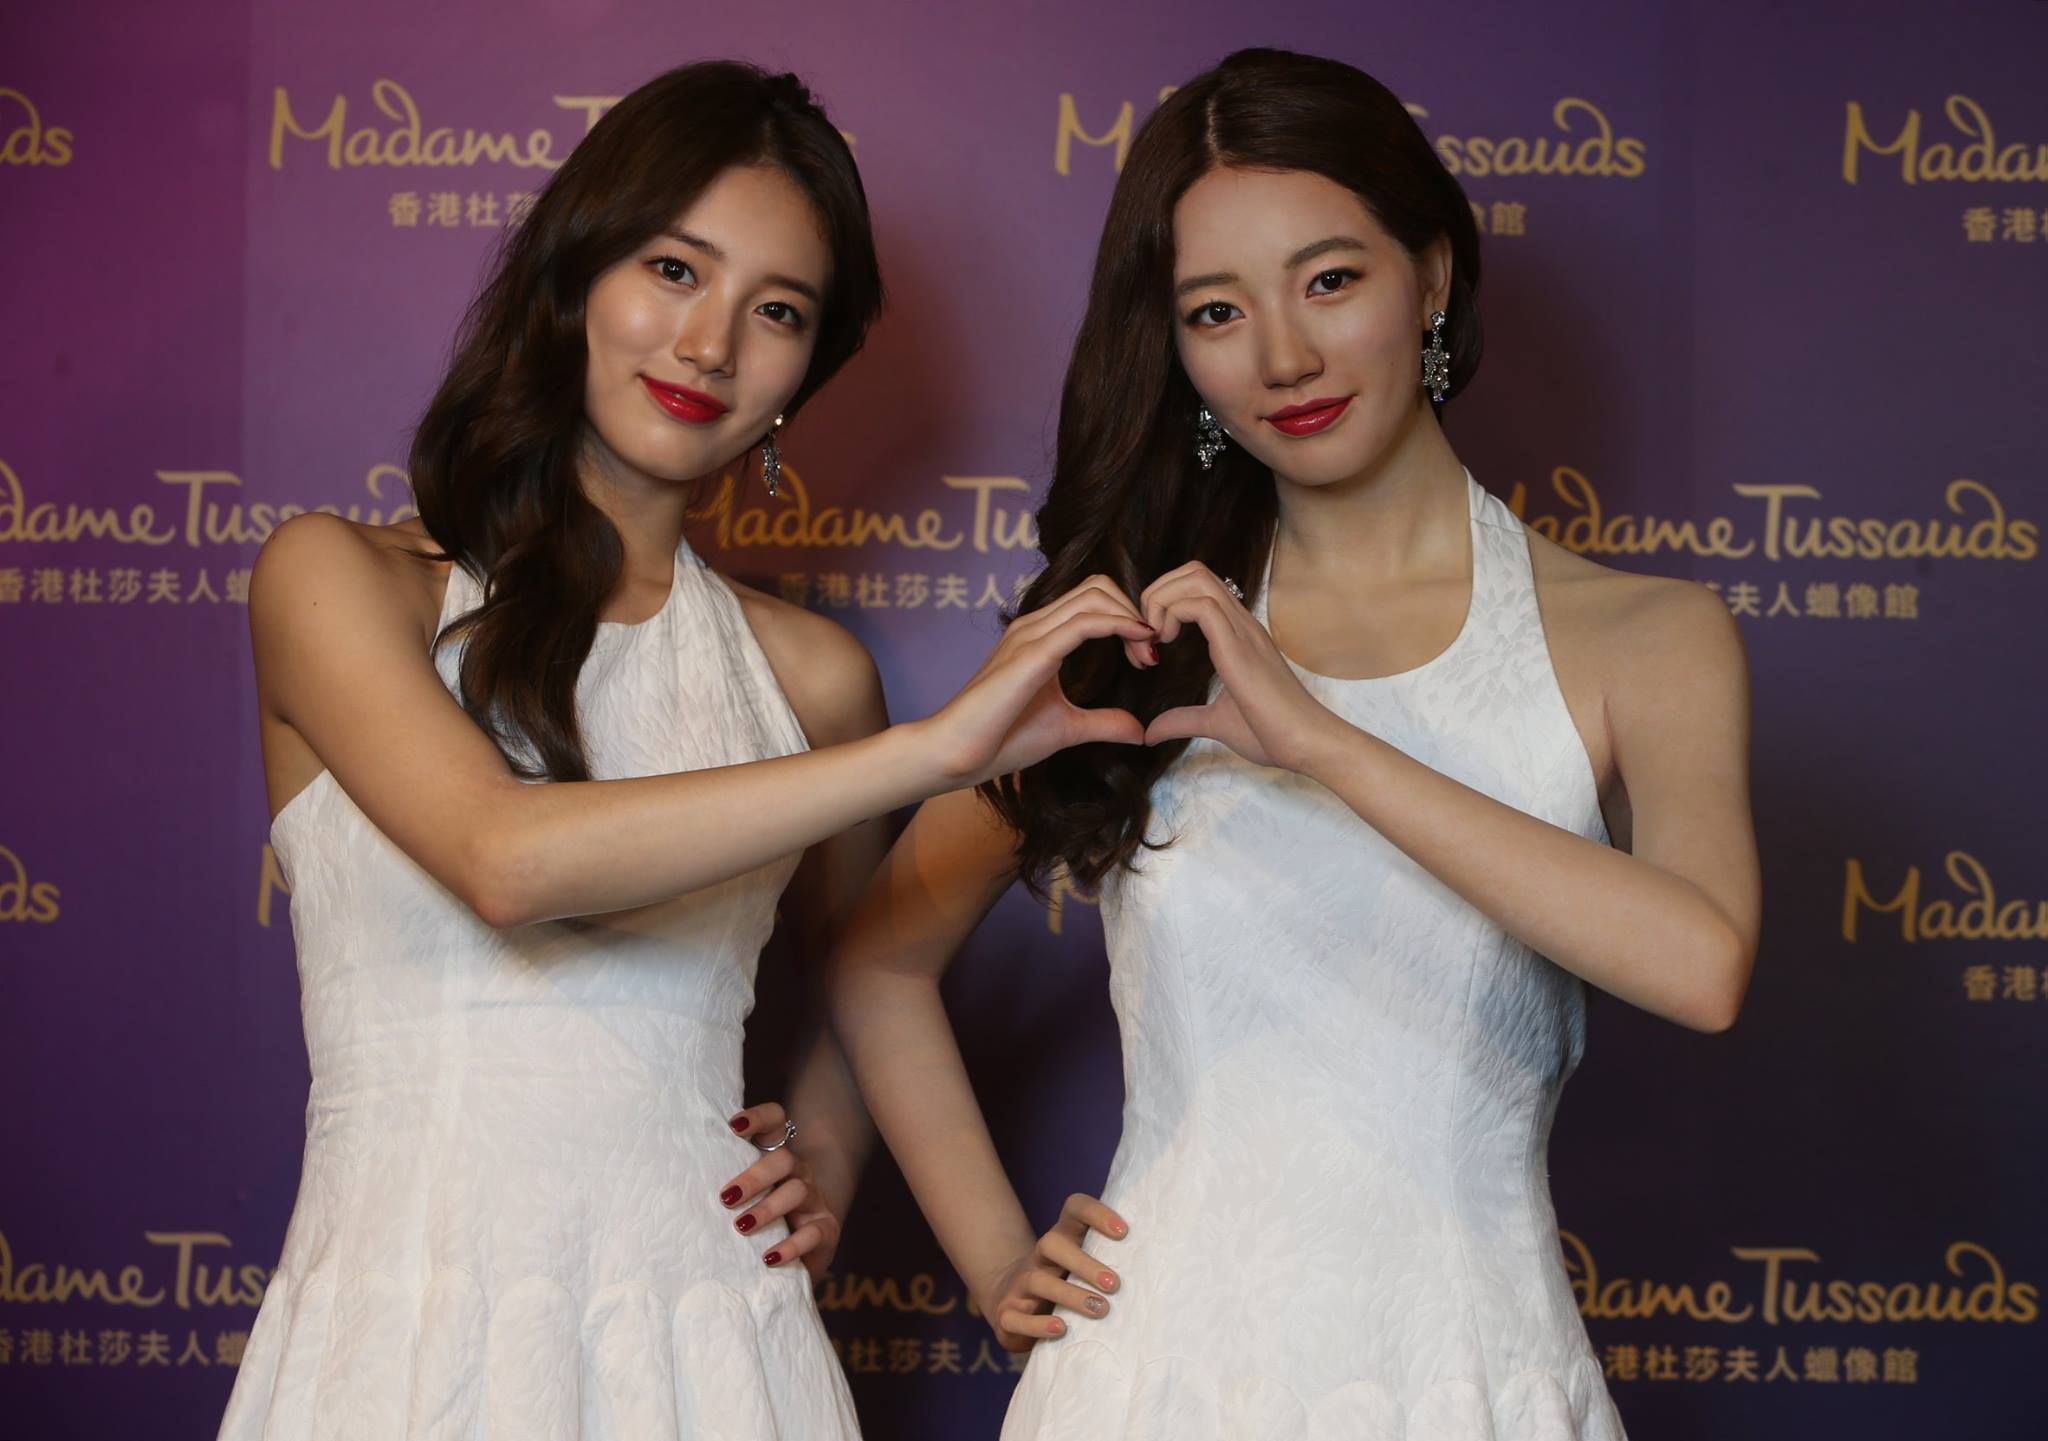 Suzy posing with her wax double at Madame Tussauds in Hong Kong / Madam Tussauds…